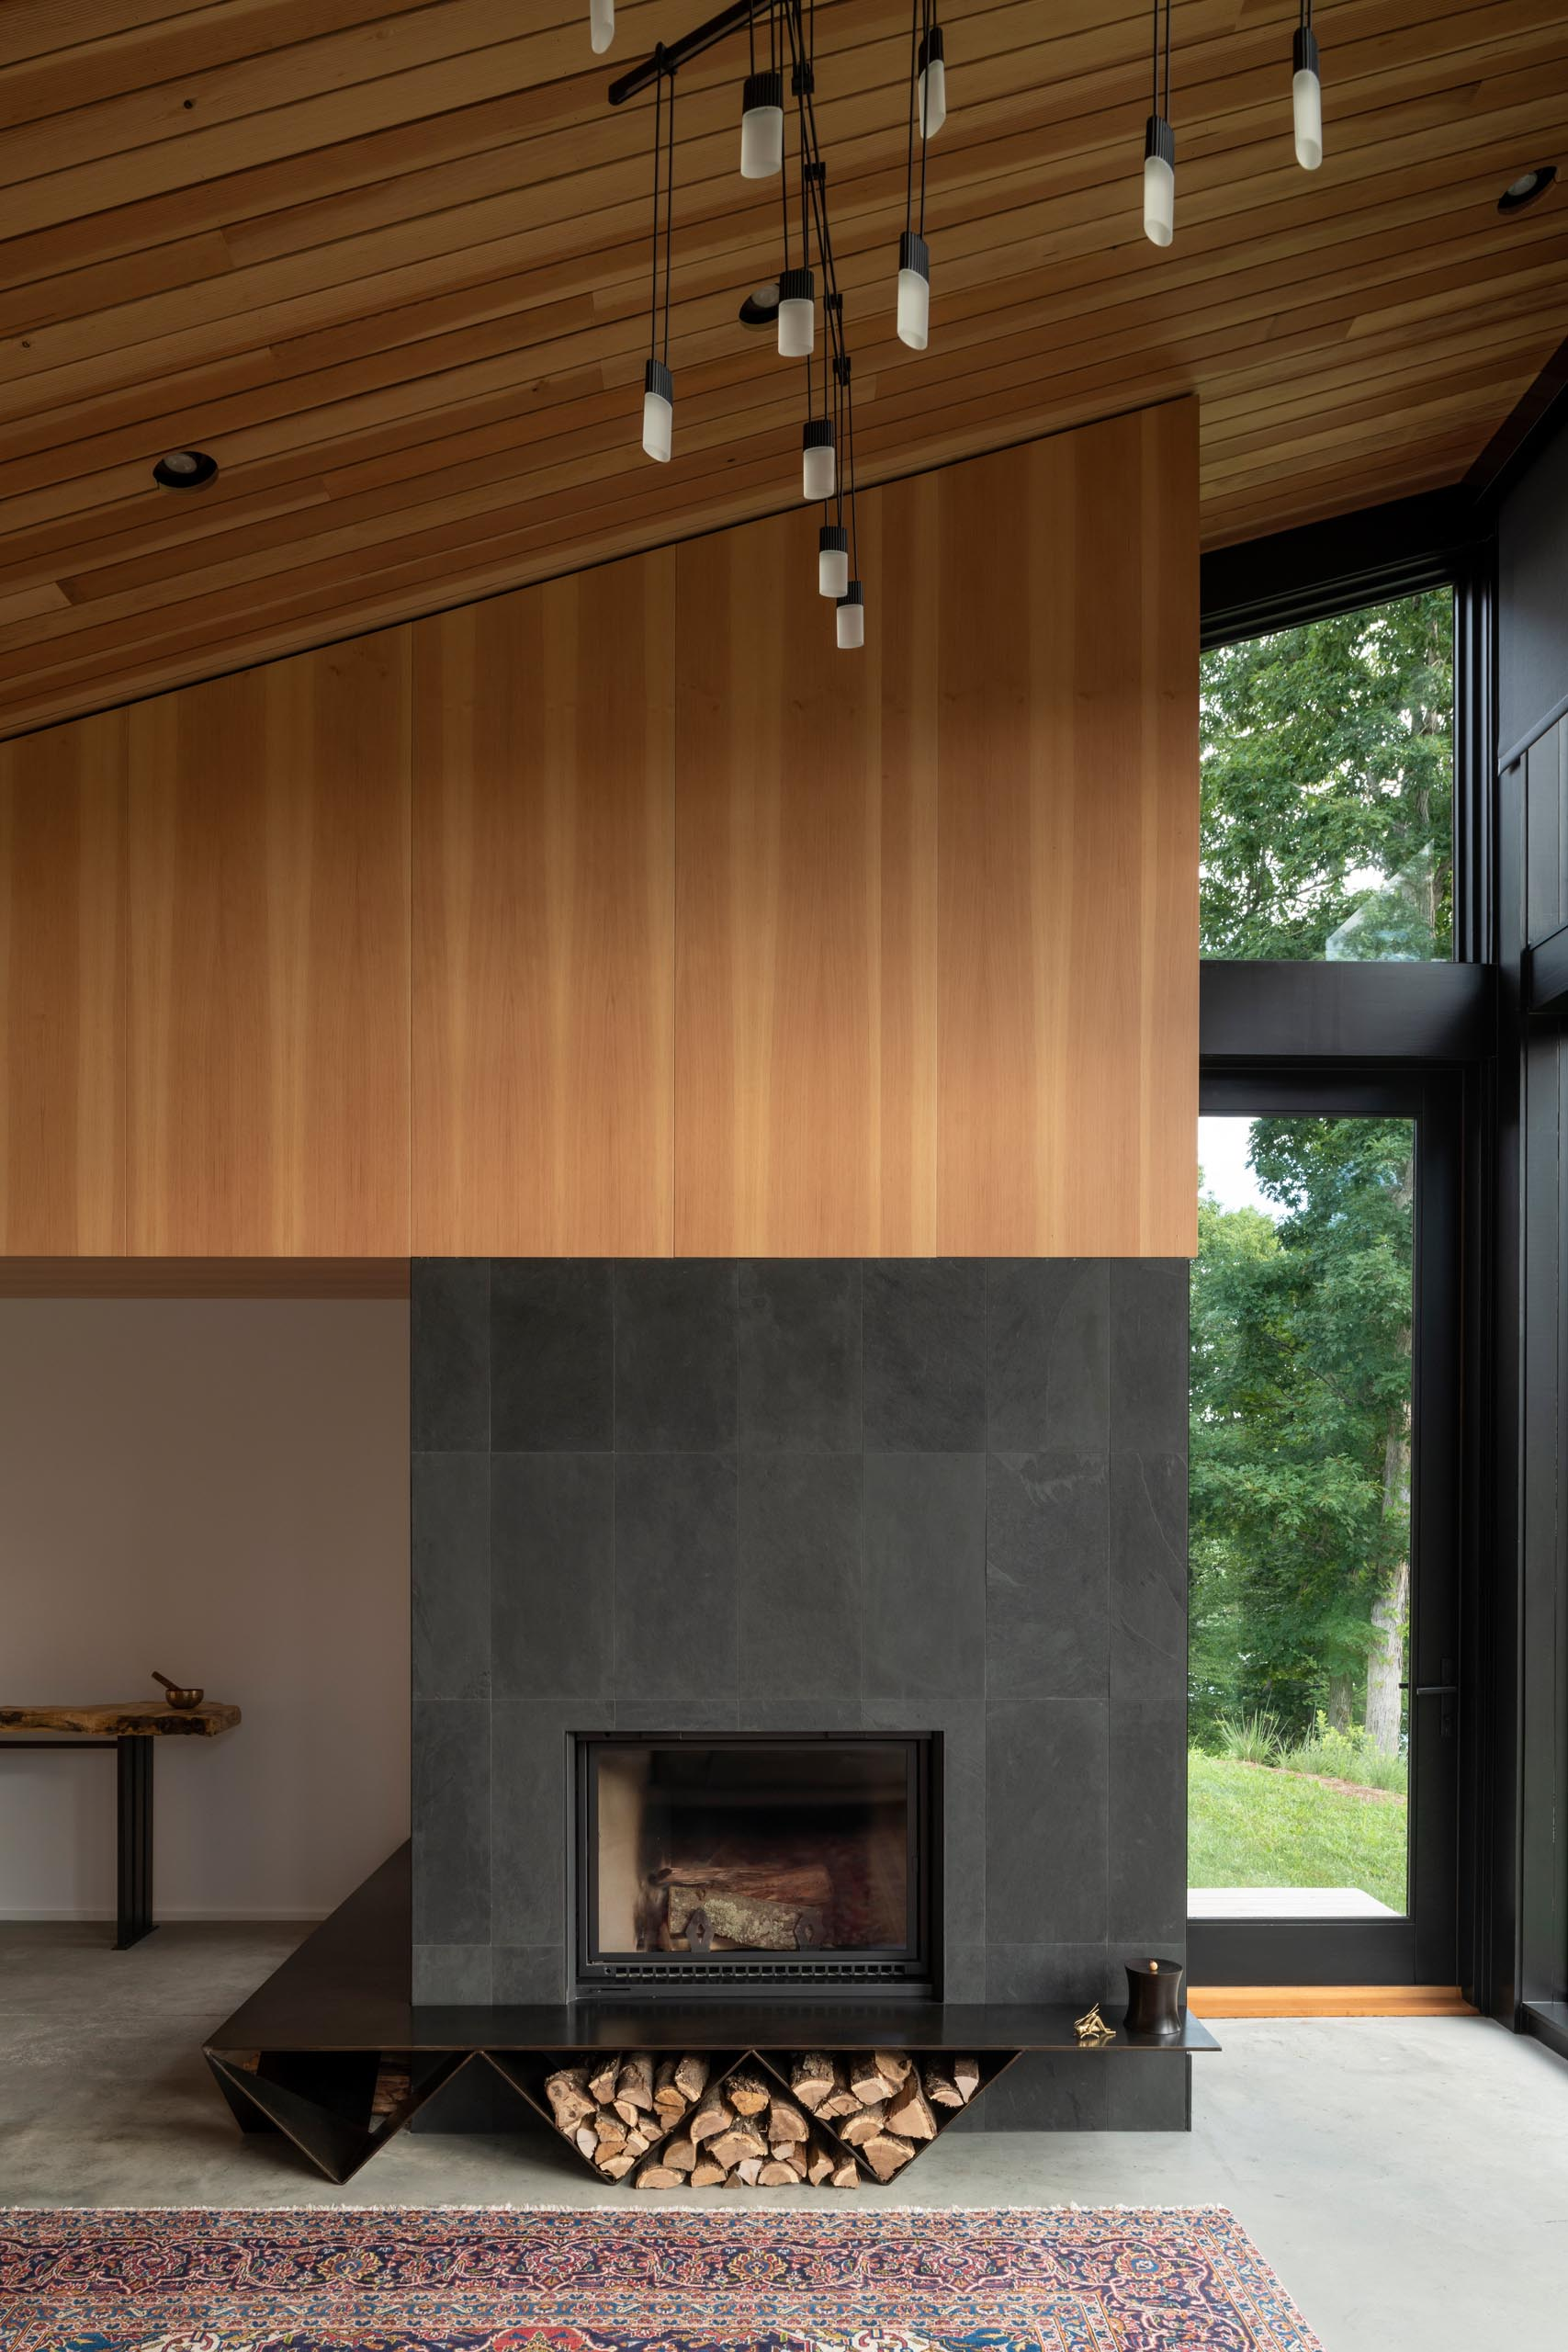 A modern fireplace with a charcoal surround and black fireplace.